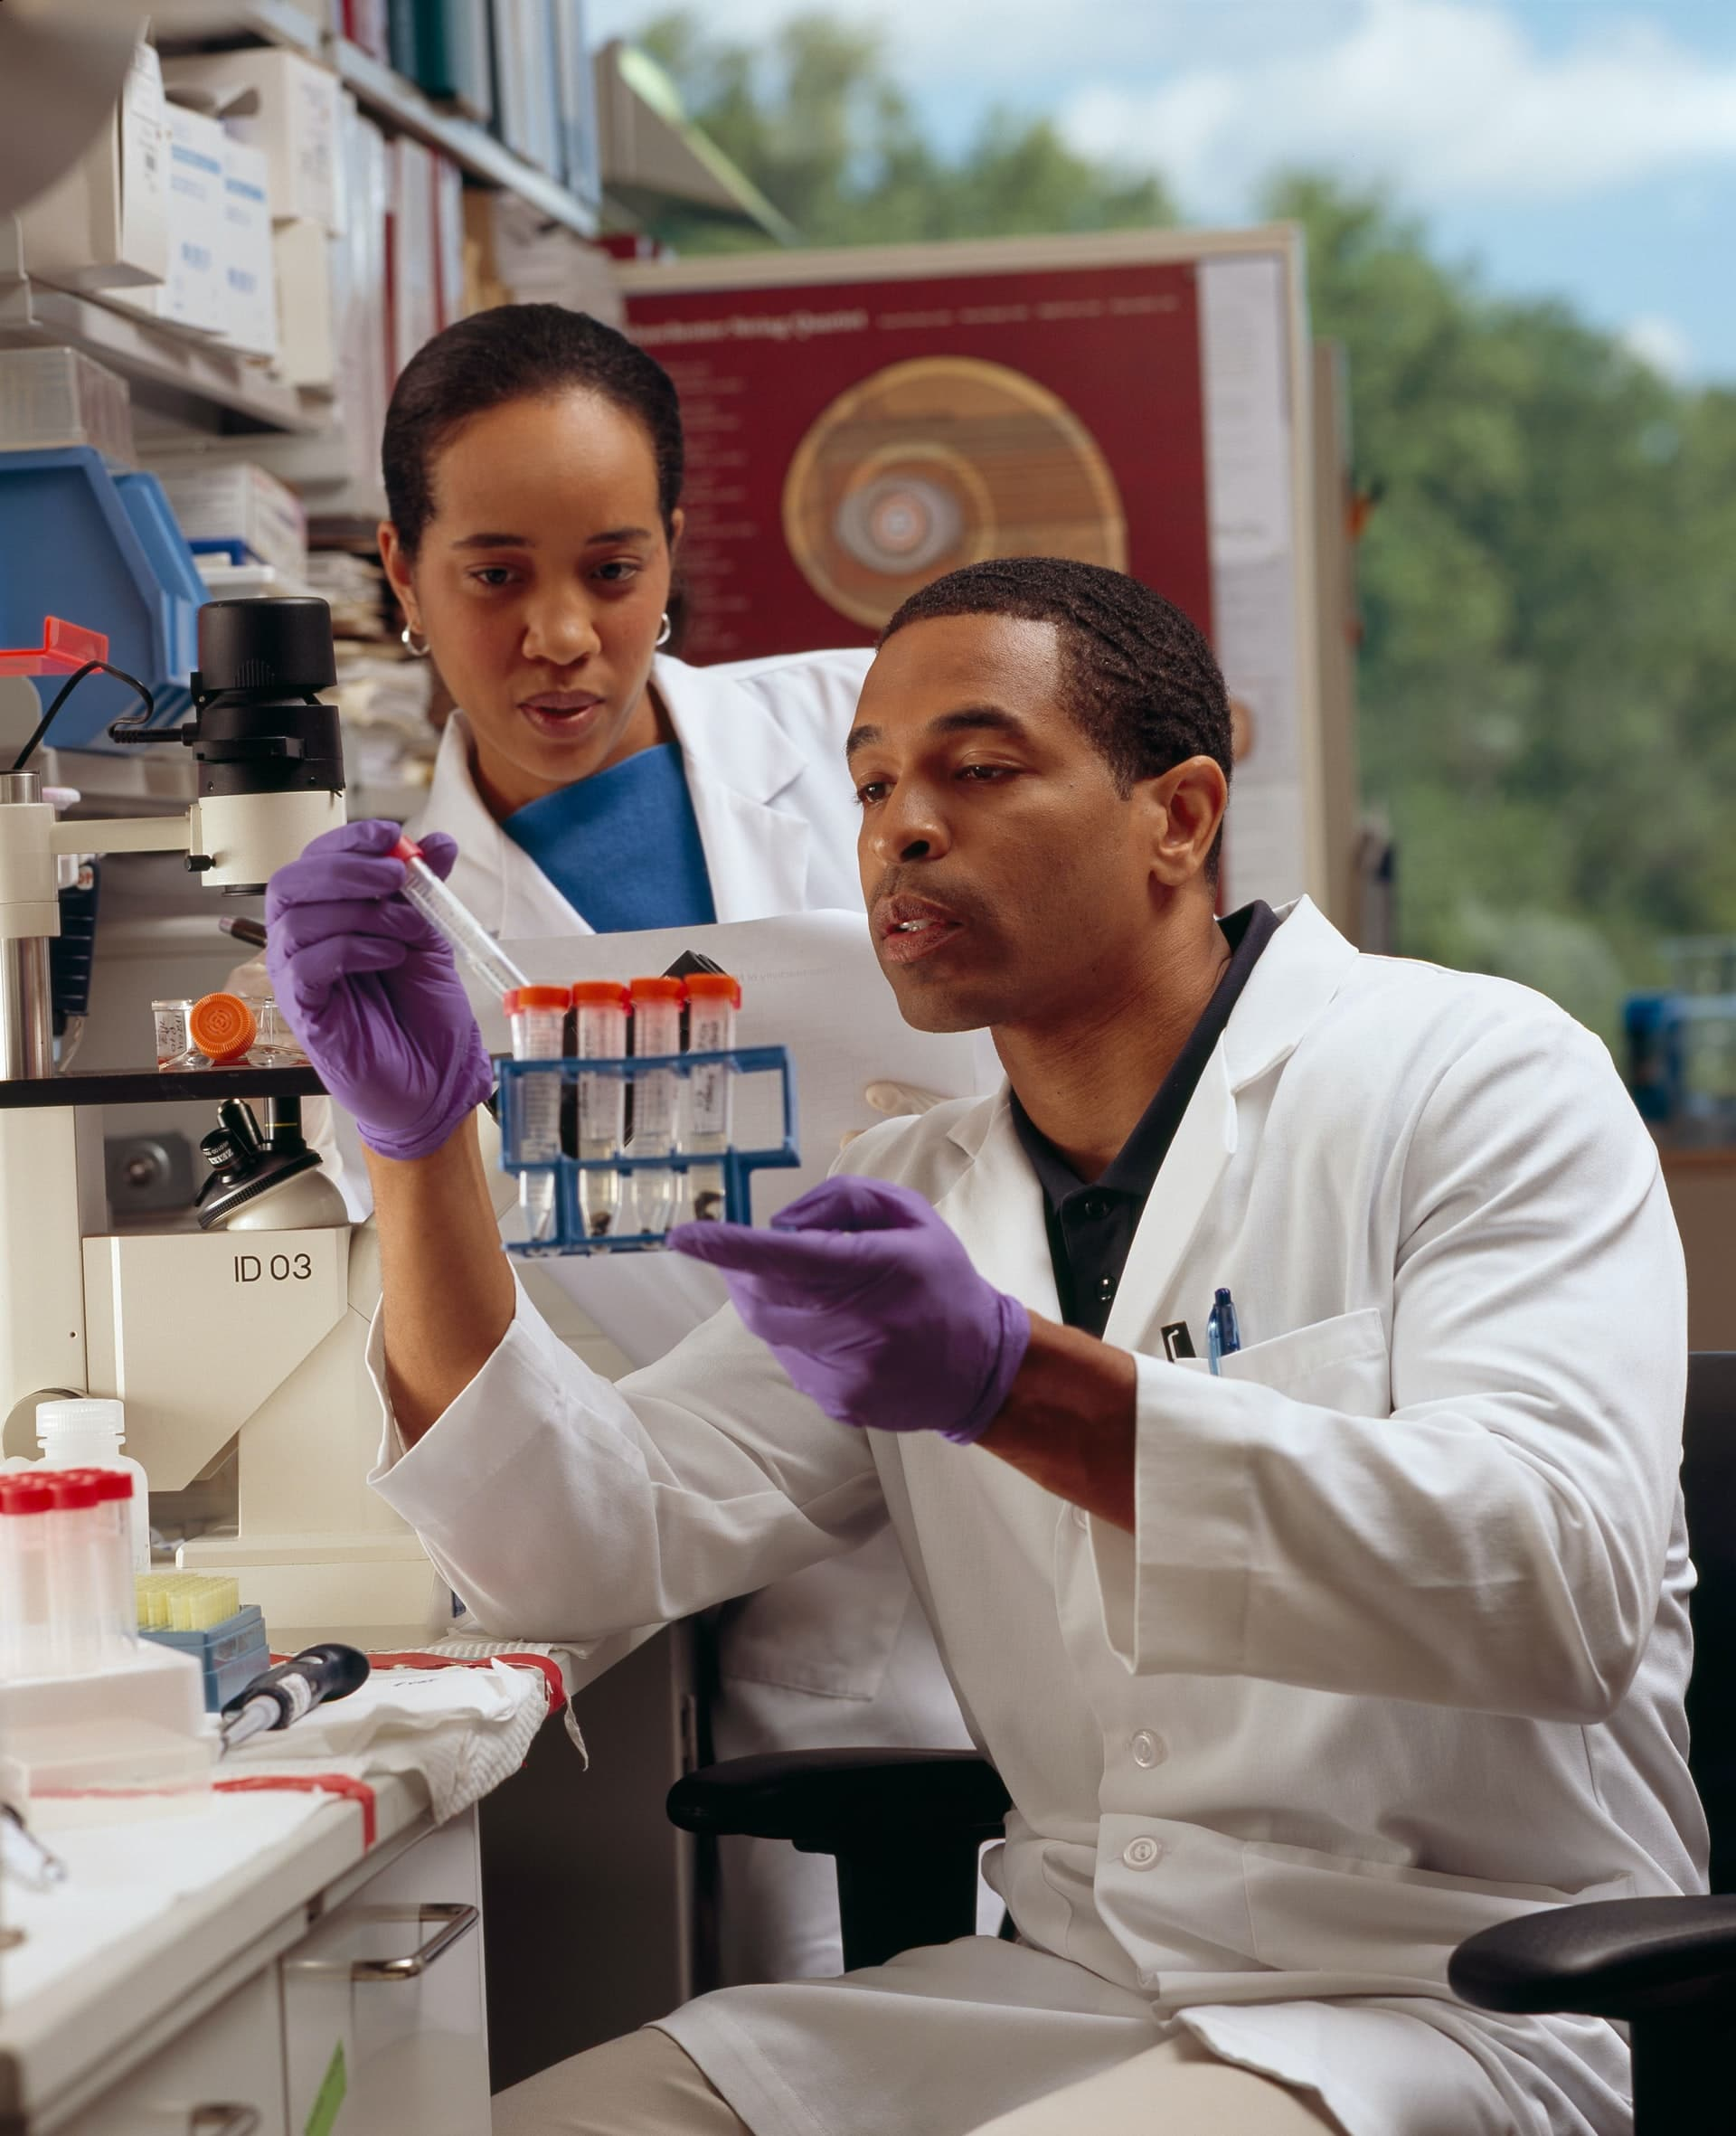 Researcher Checks Test Tubes. An African American male researcher checks test tubes as an AfricanAmerican female cancer researcher looks on.